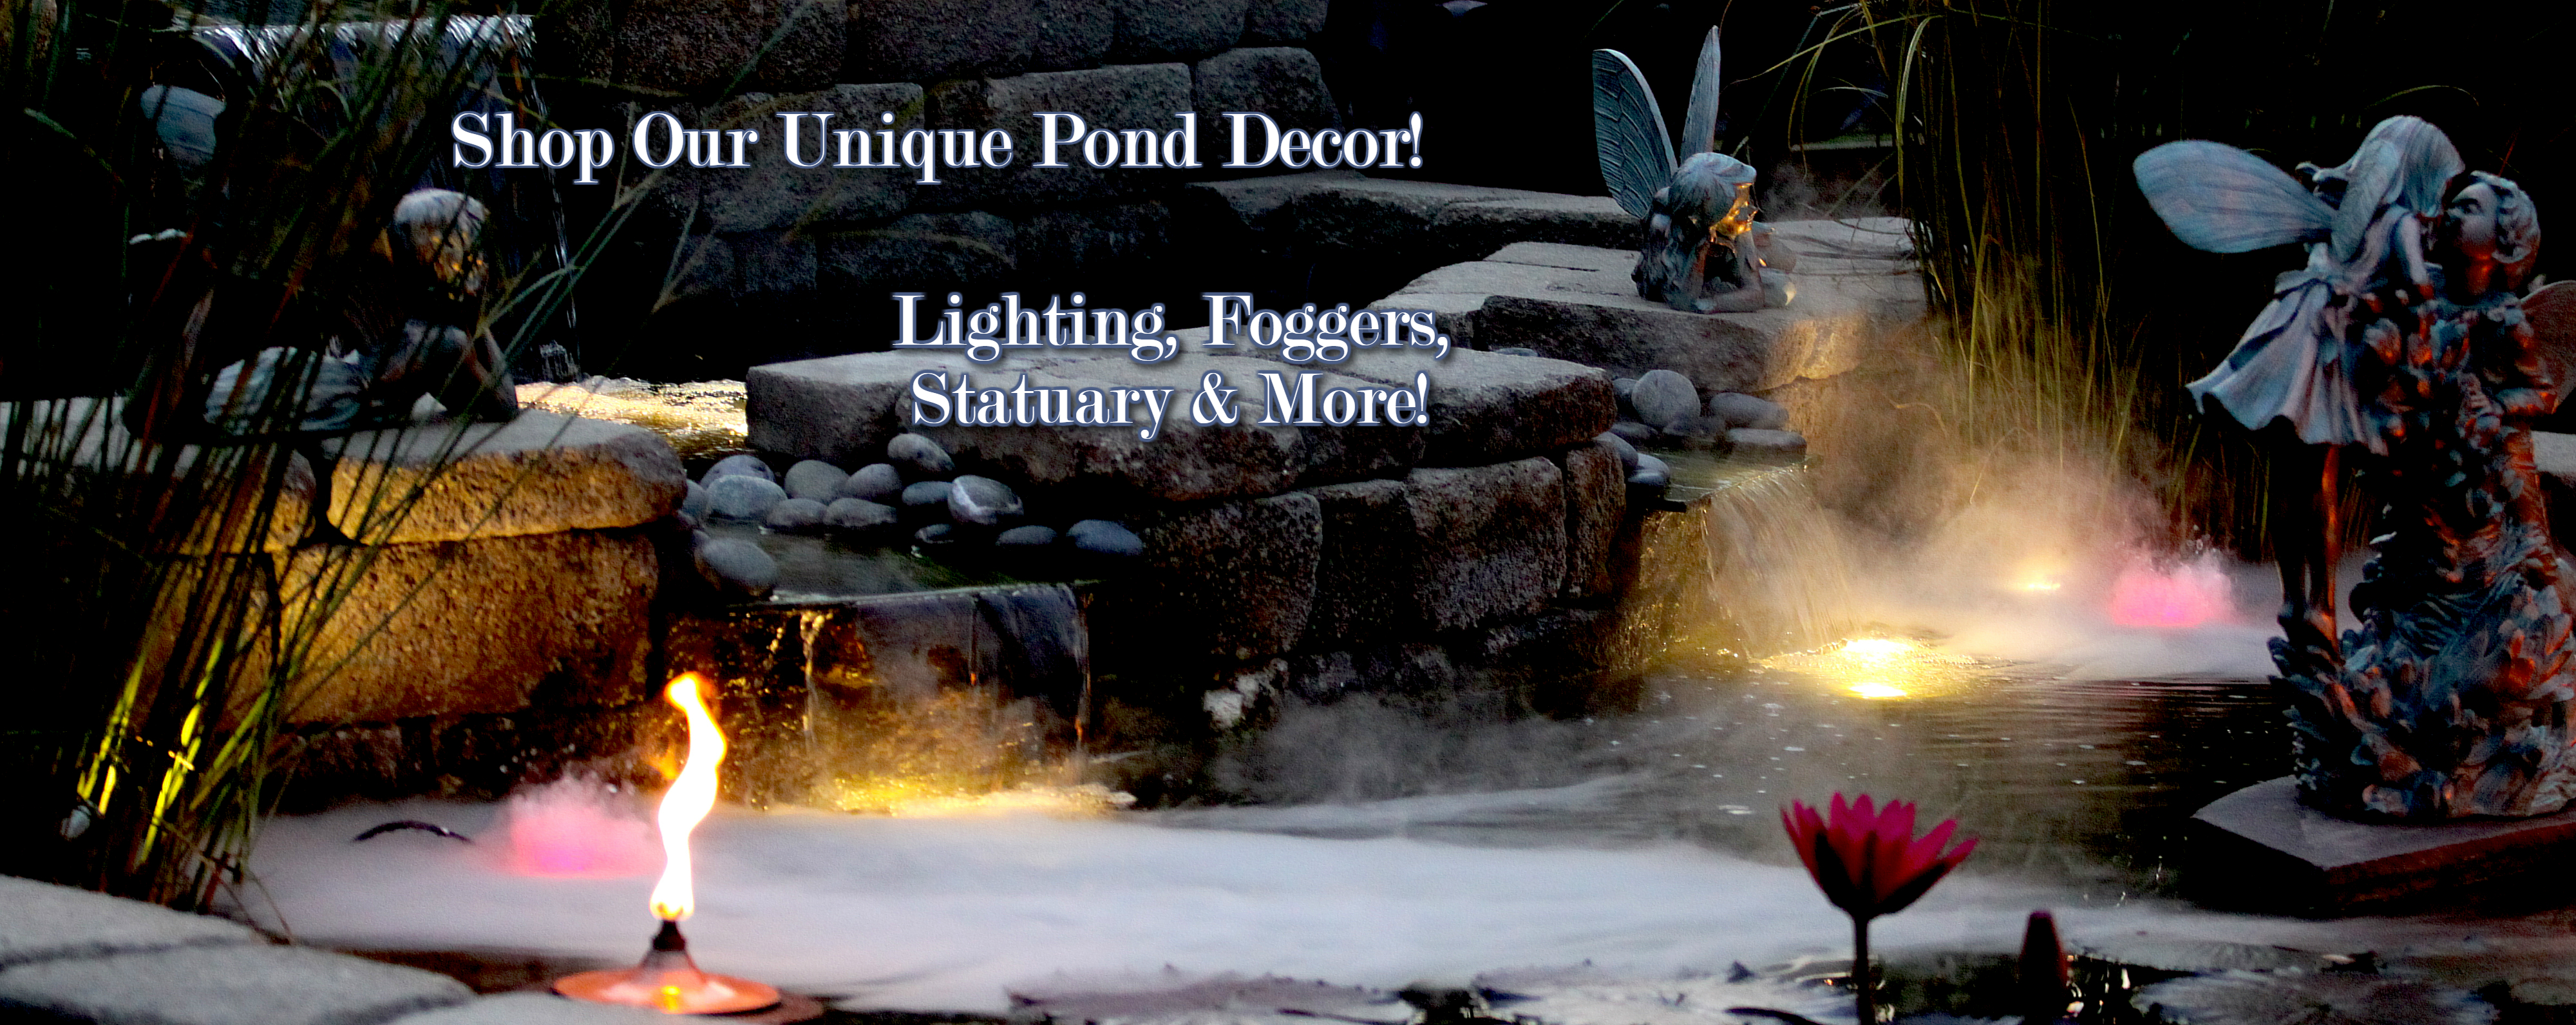 Pond supplies pond kits water features fountains for Pond kits supplies